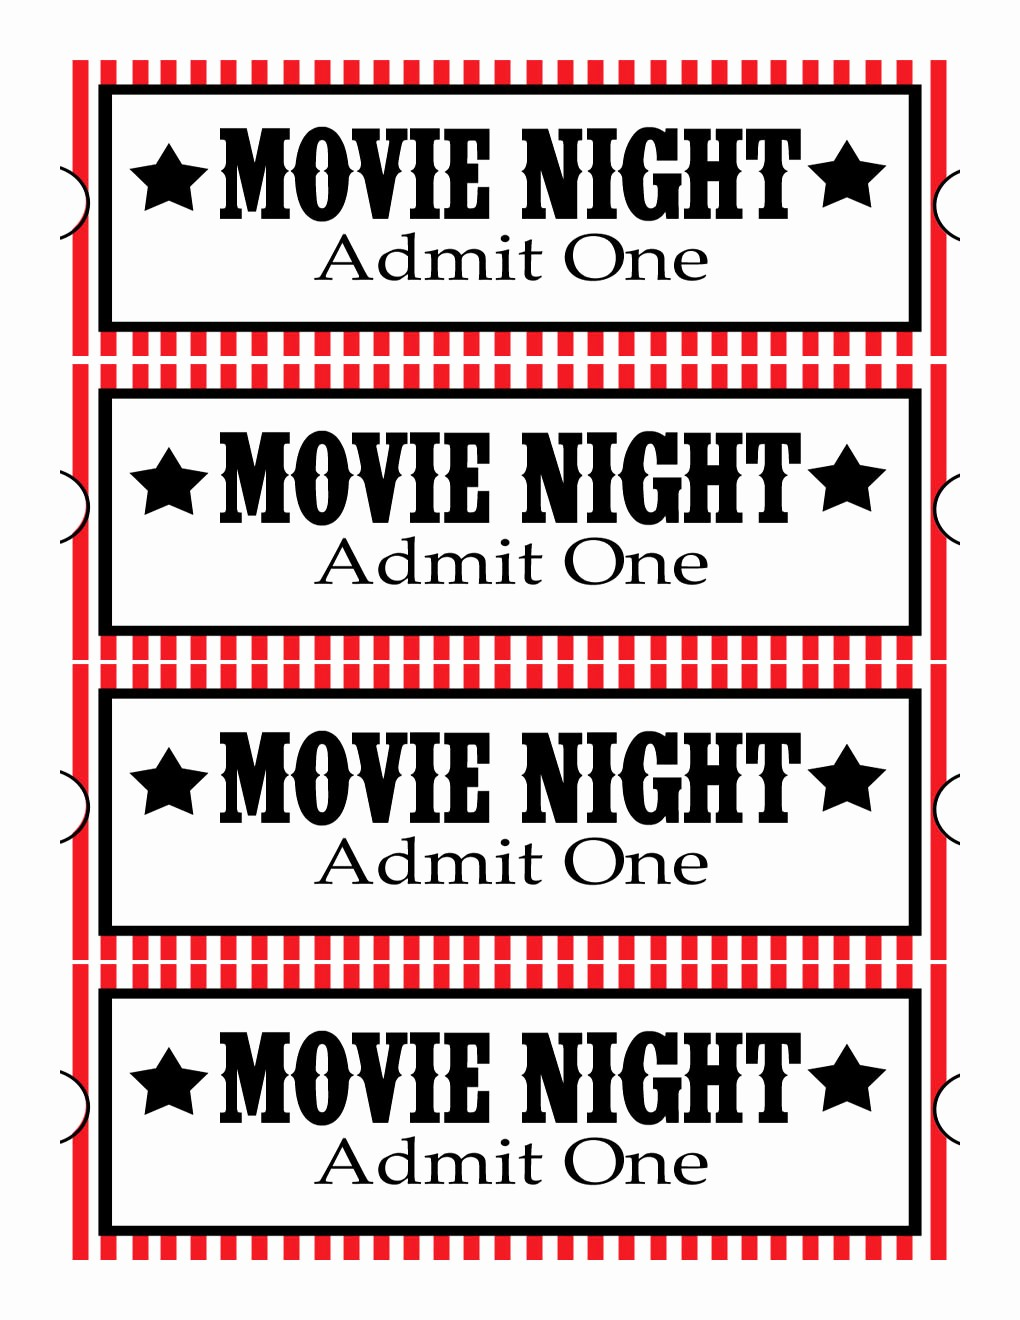 Movie Ticket Template Free Printable Awesome Sweet Daisy Designs Free Printables Home Movie theatre Night